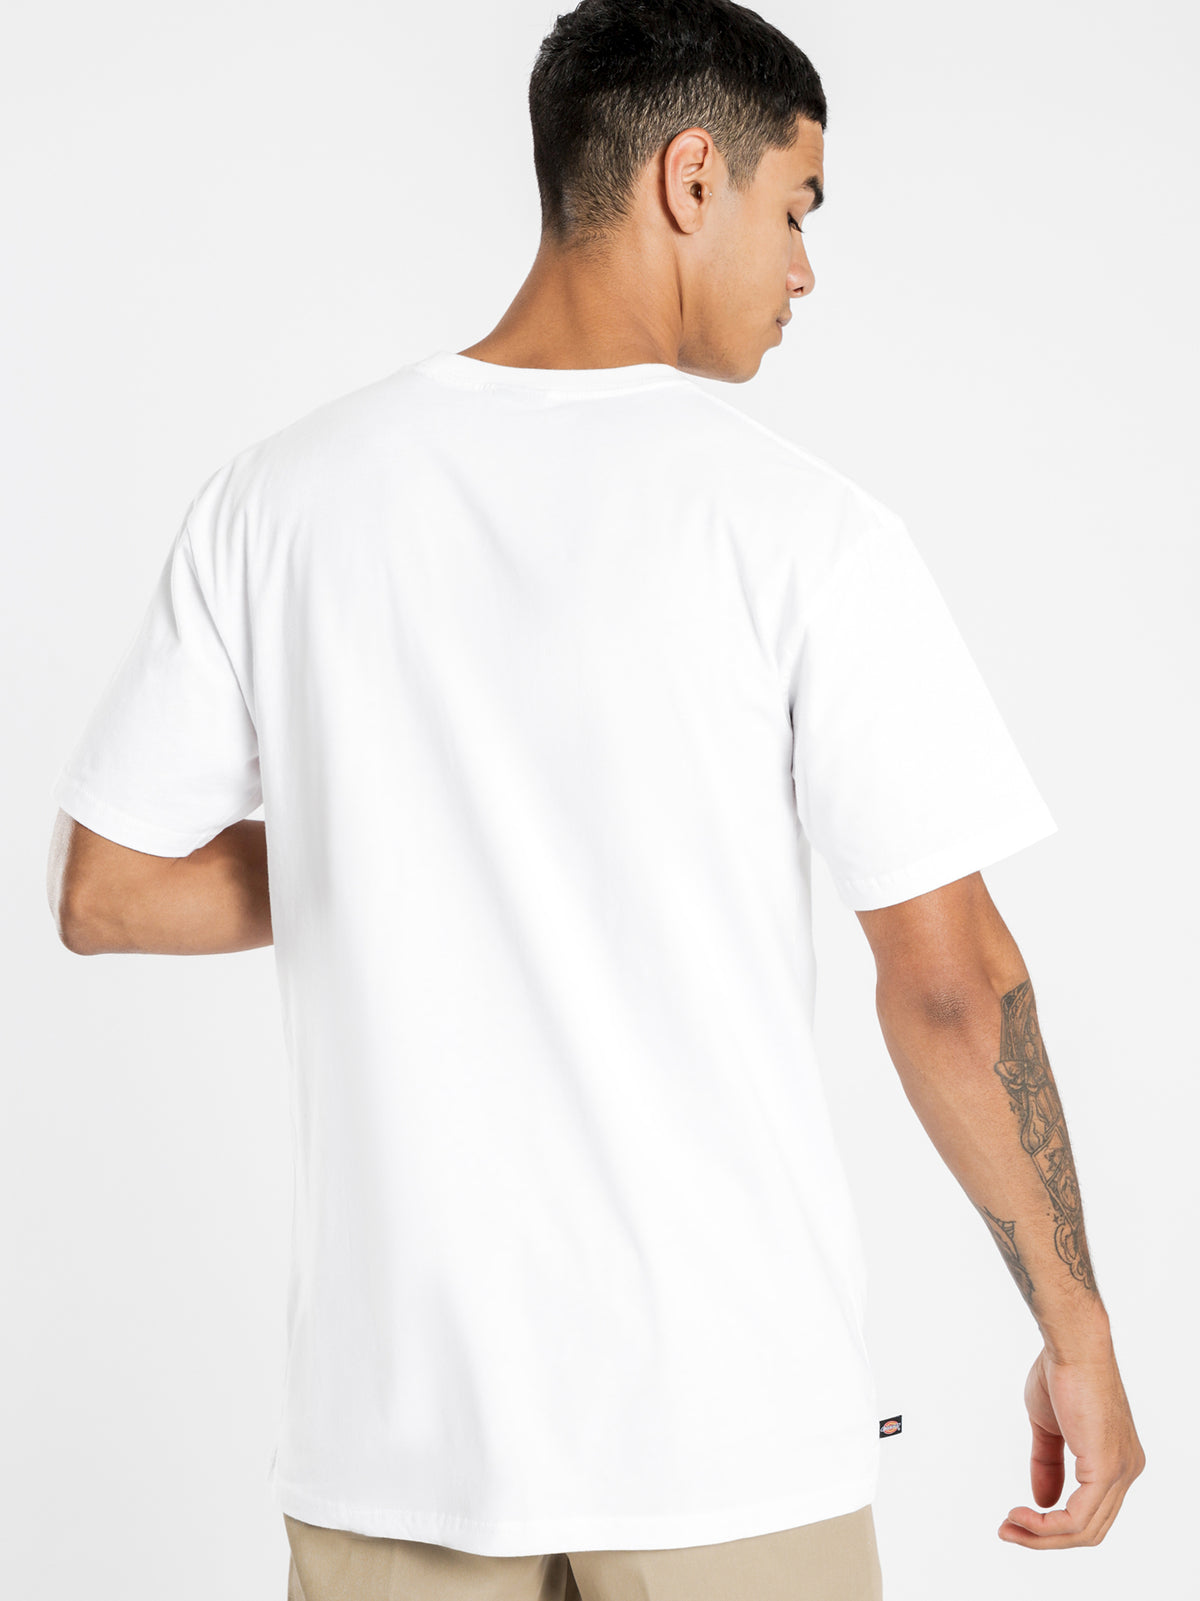 H.S Rockwood T-Shirt in White